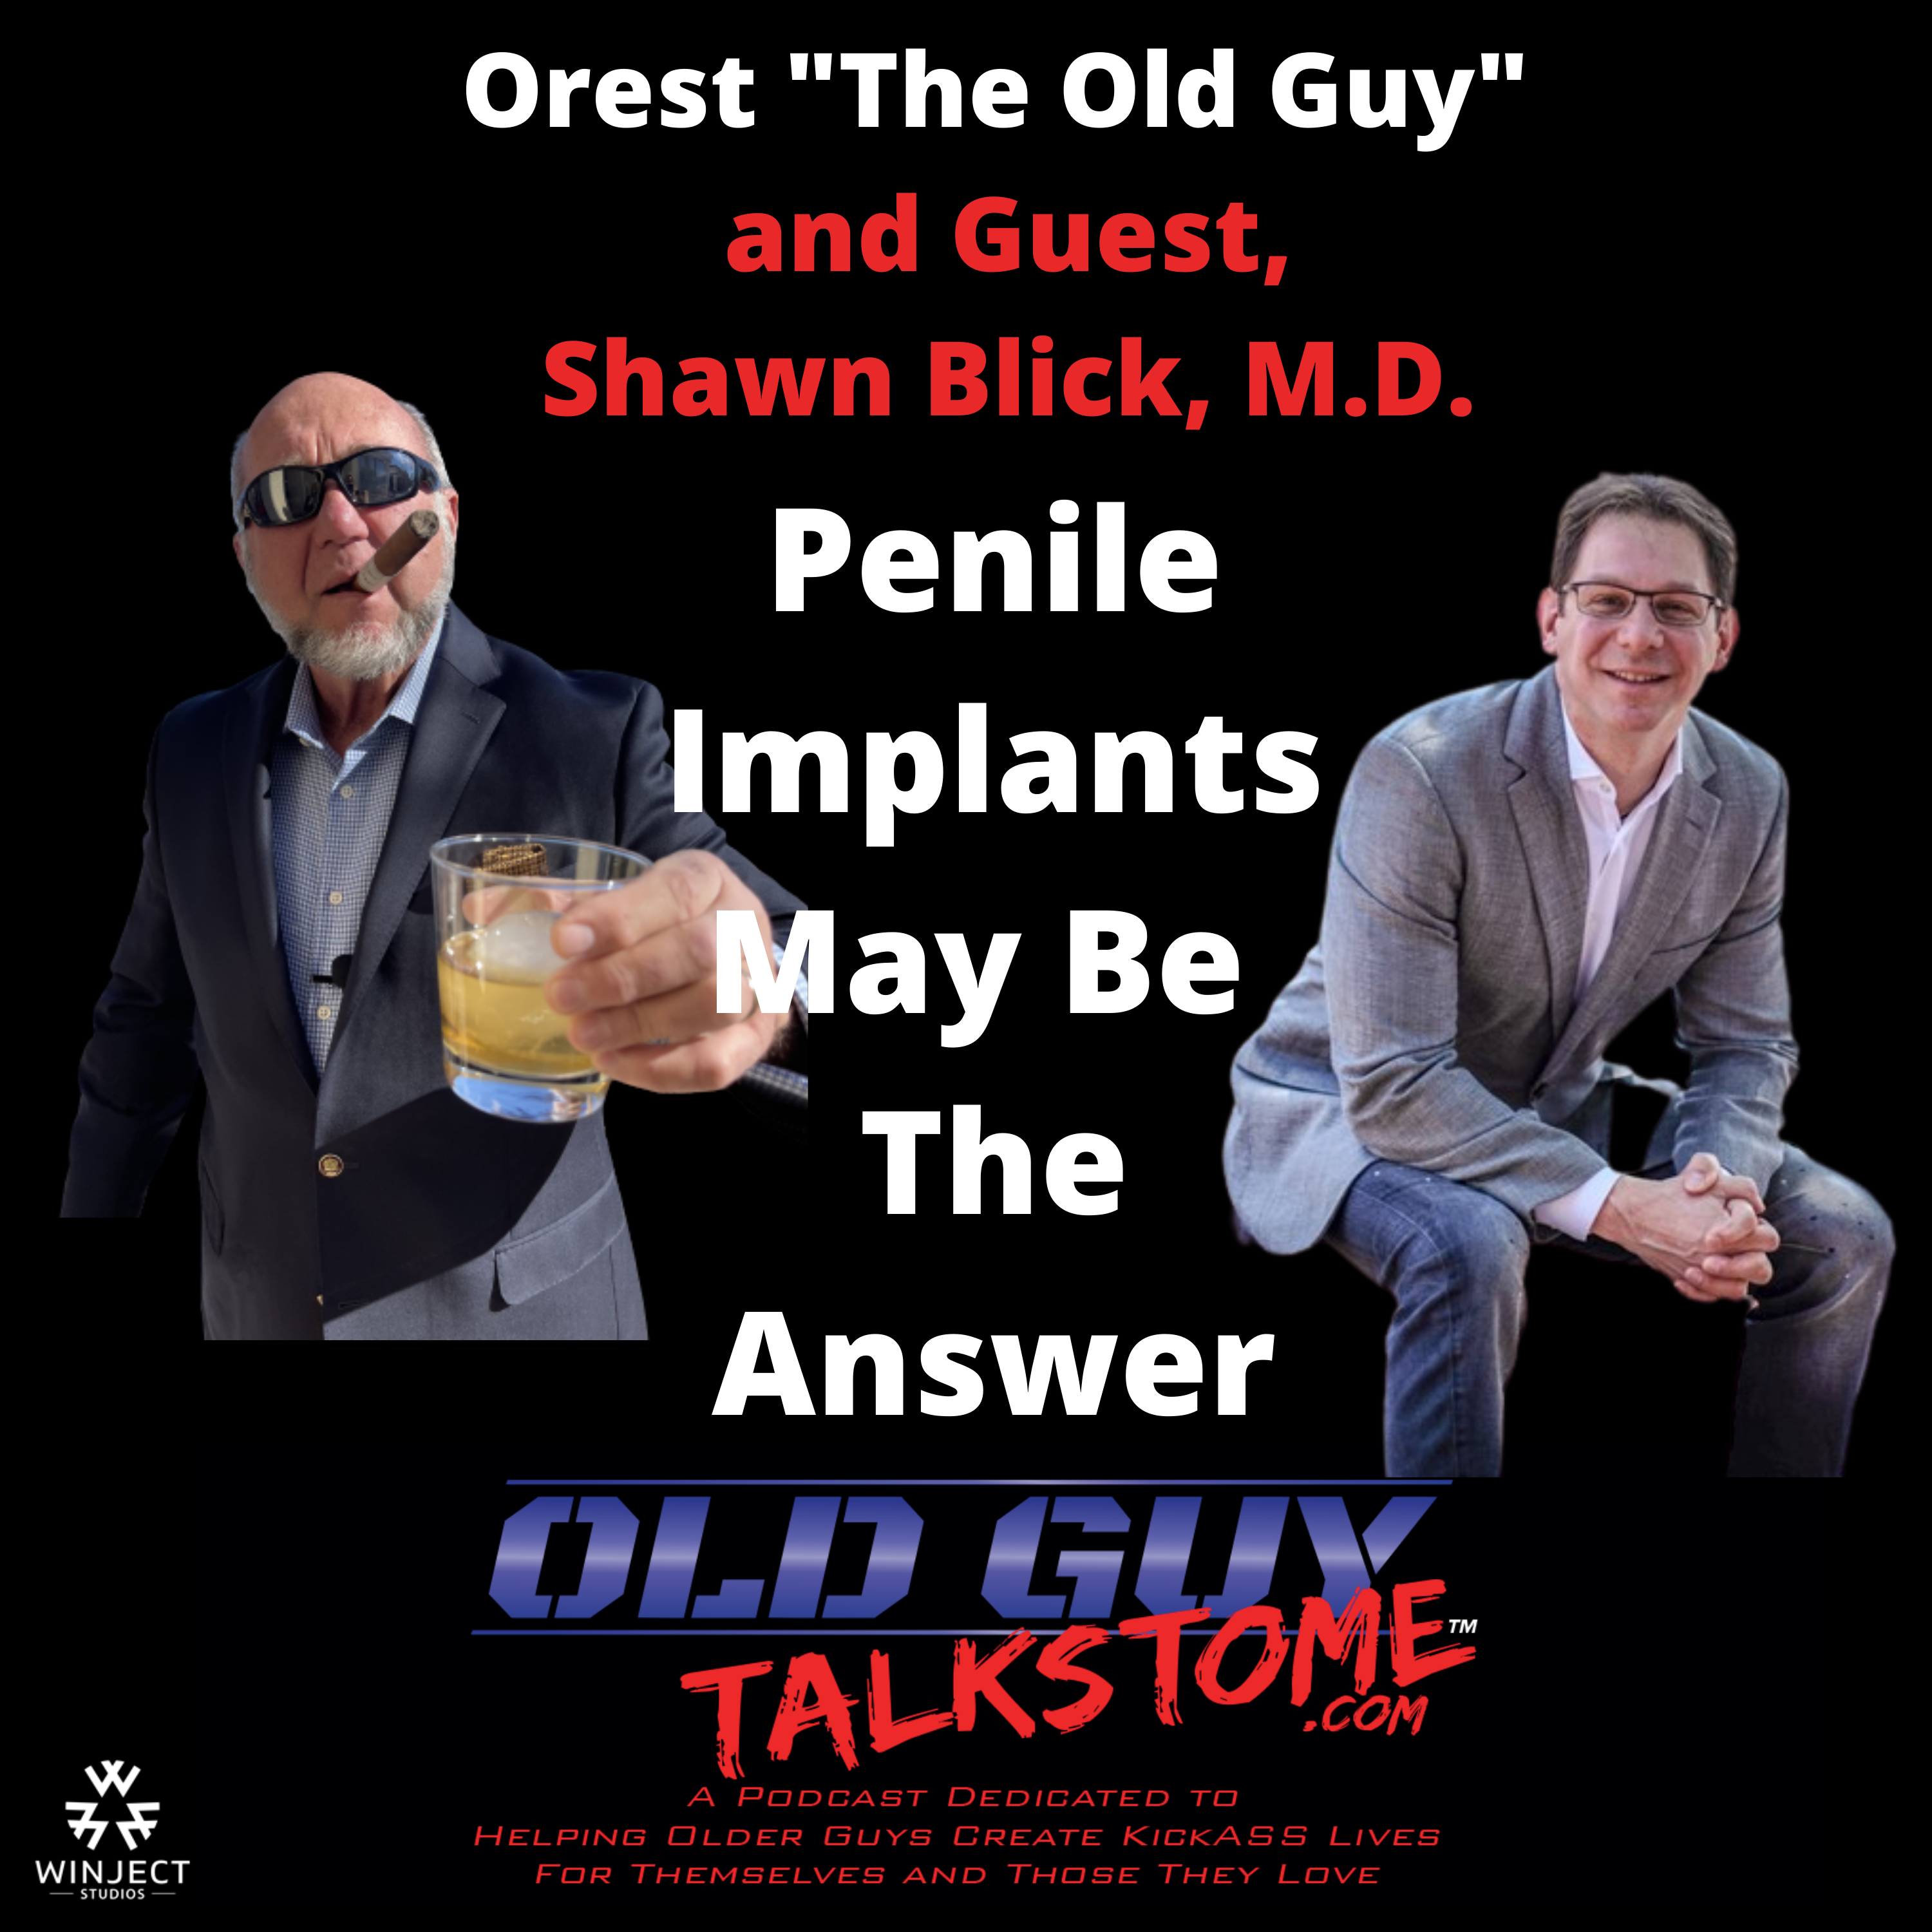 OldGuyTalksToMe - 80.  Penile Implants May Be The Answer with Shawn Blick, M.D.